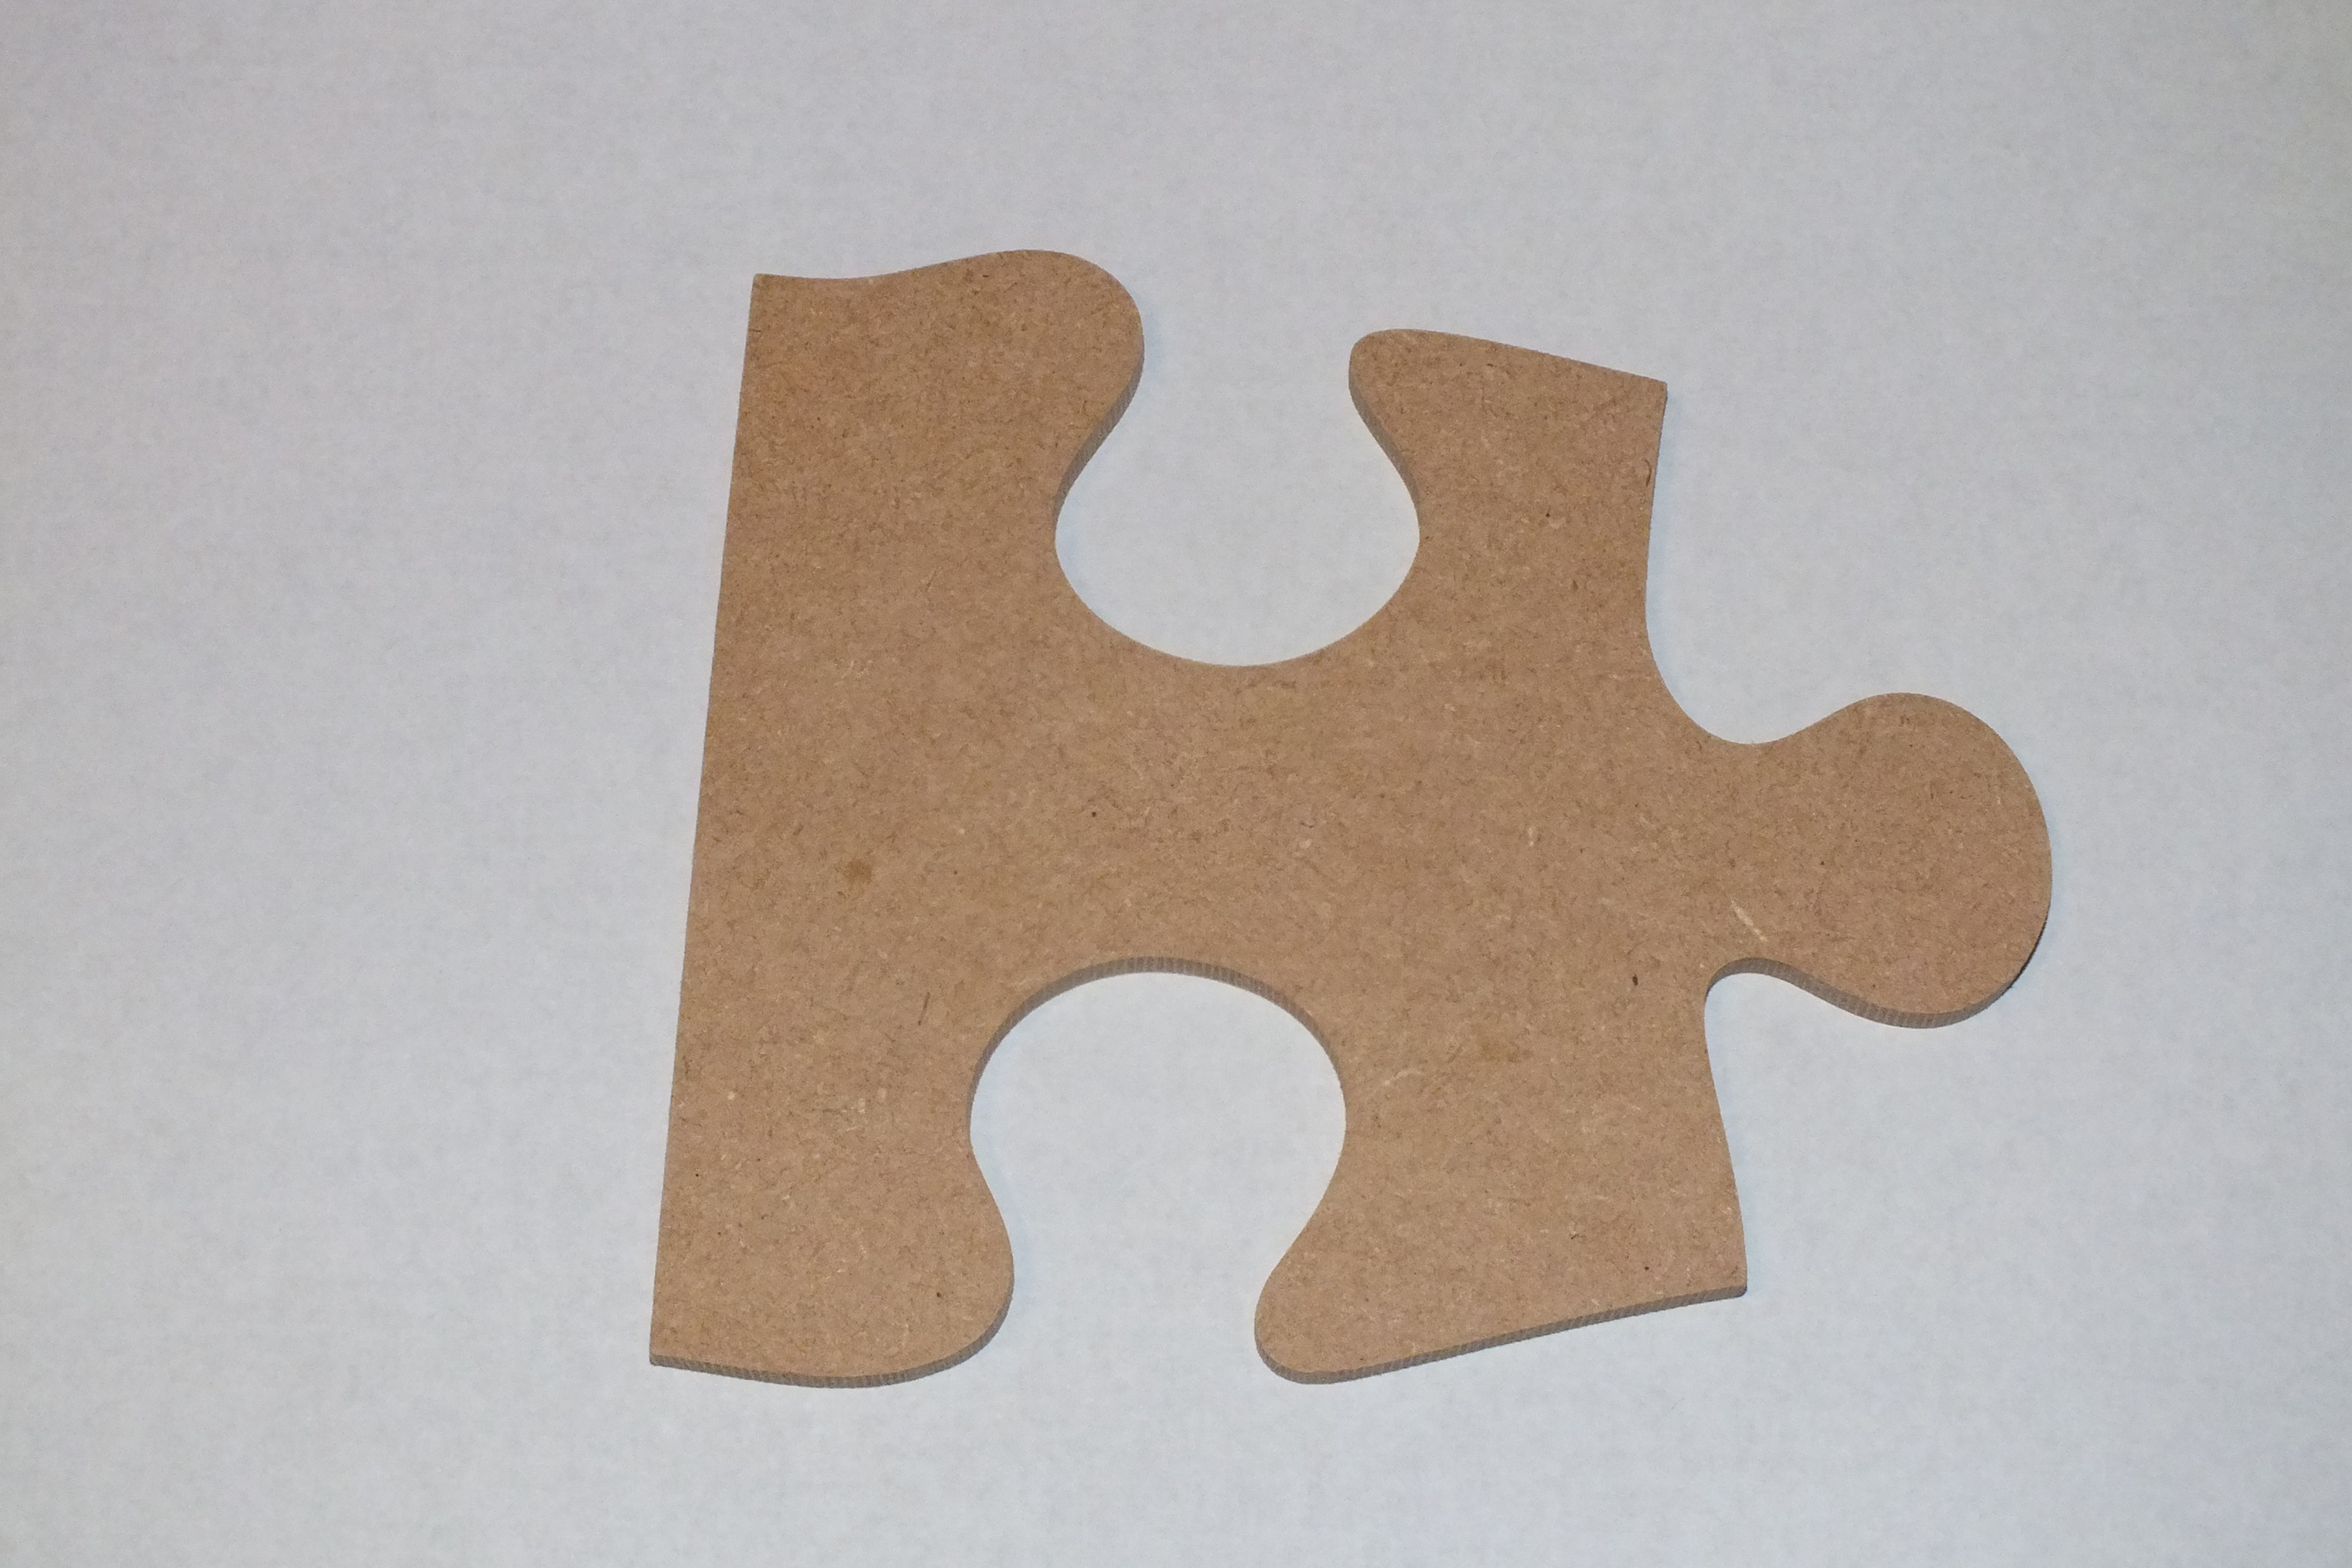 Puzzle, Game, Object, HQ Photo